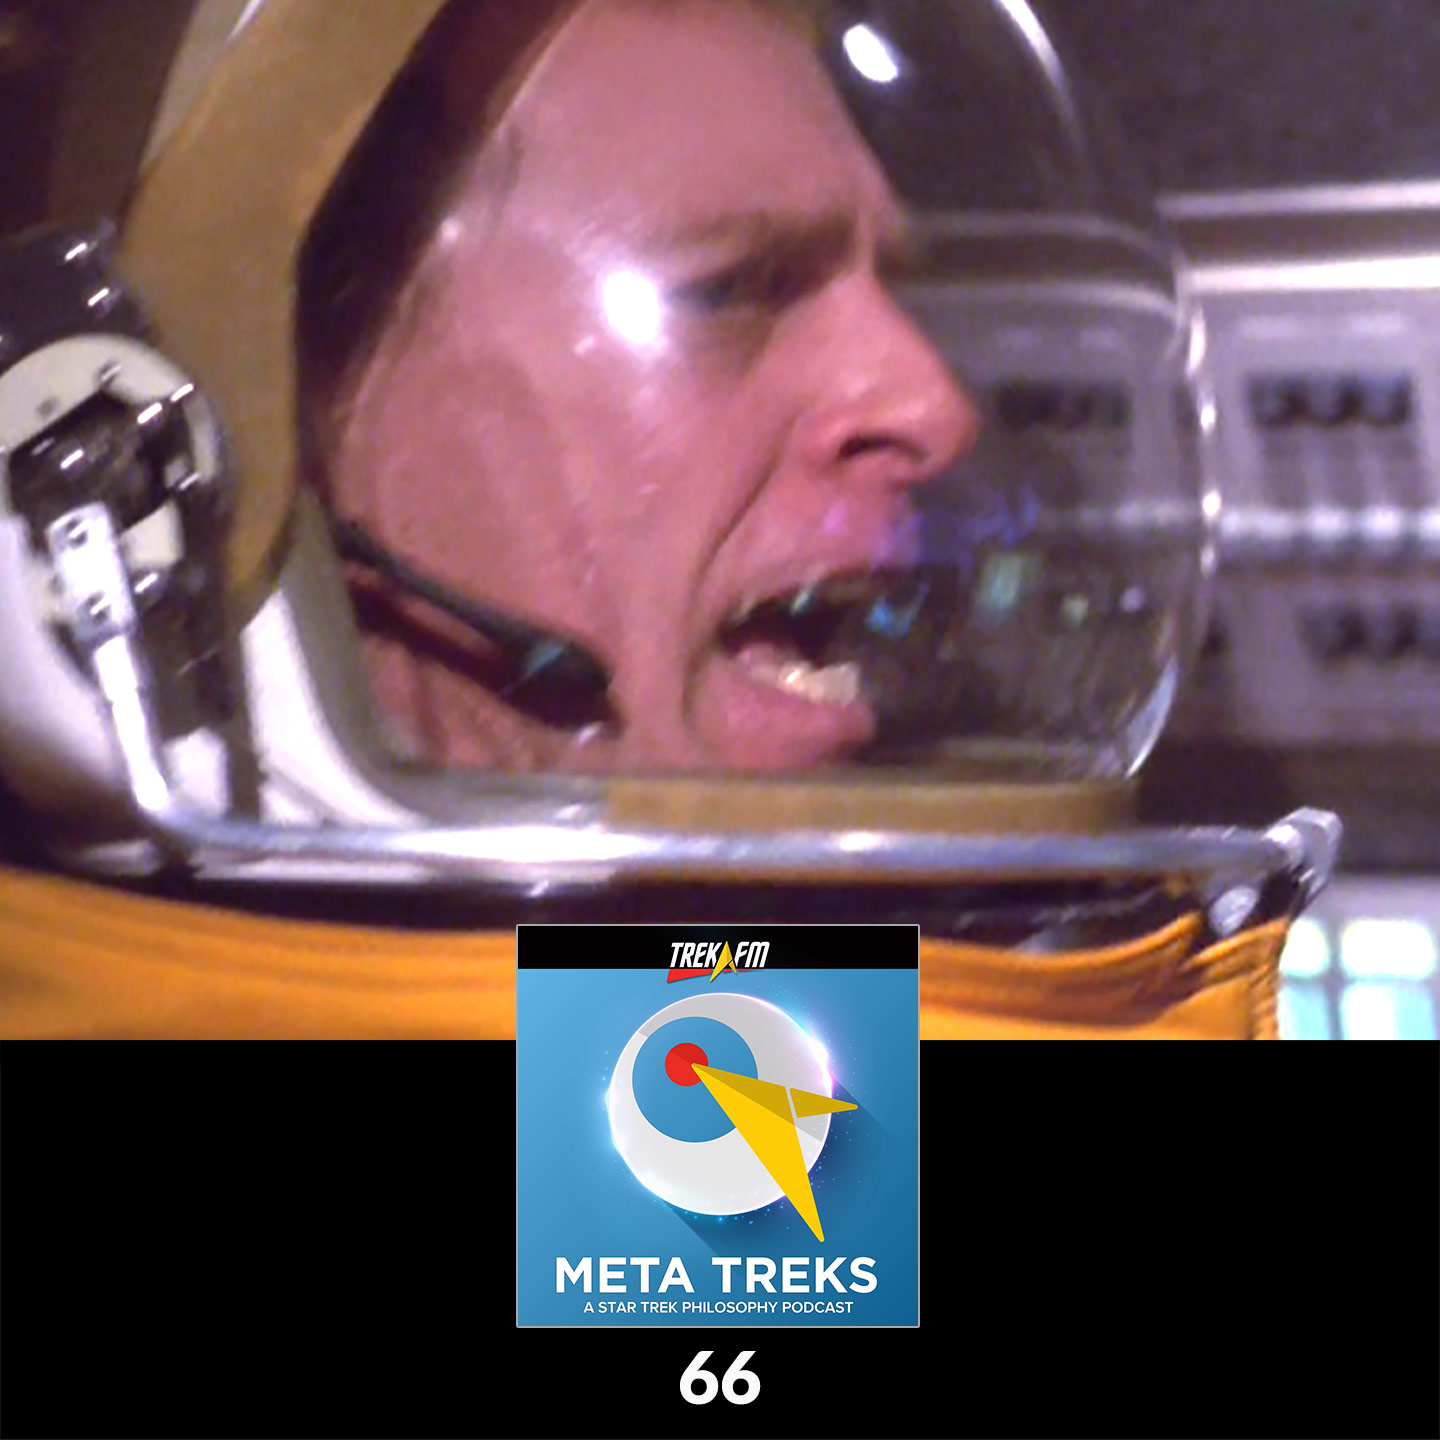 Meta Treks 66: Warp 13 with Hair on Fire - Exploration and Expanding Knowledge.